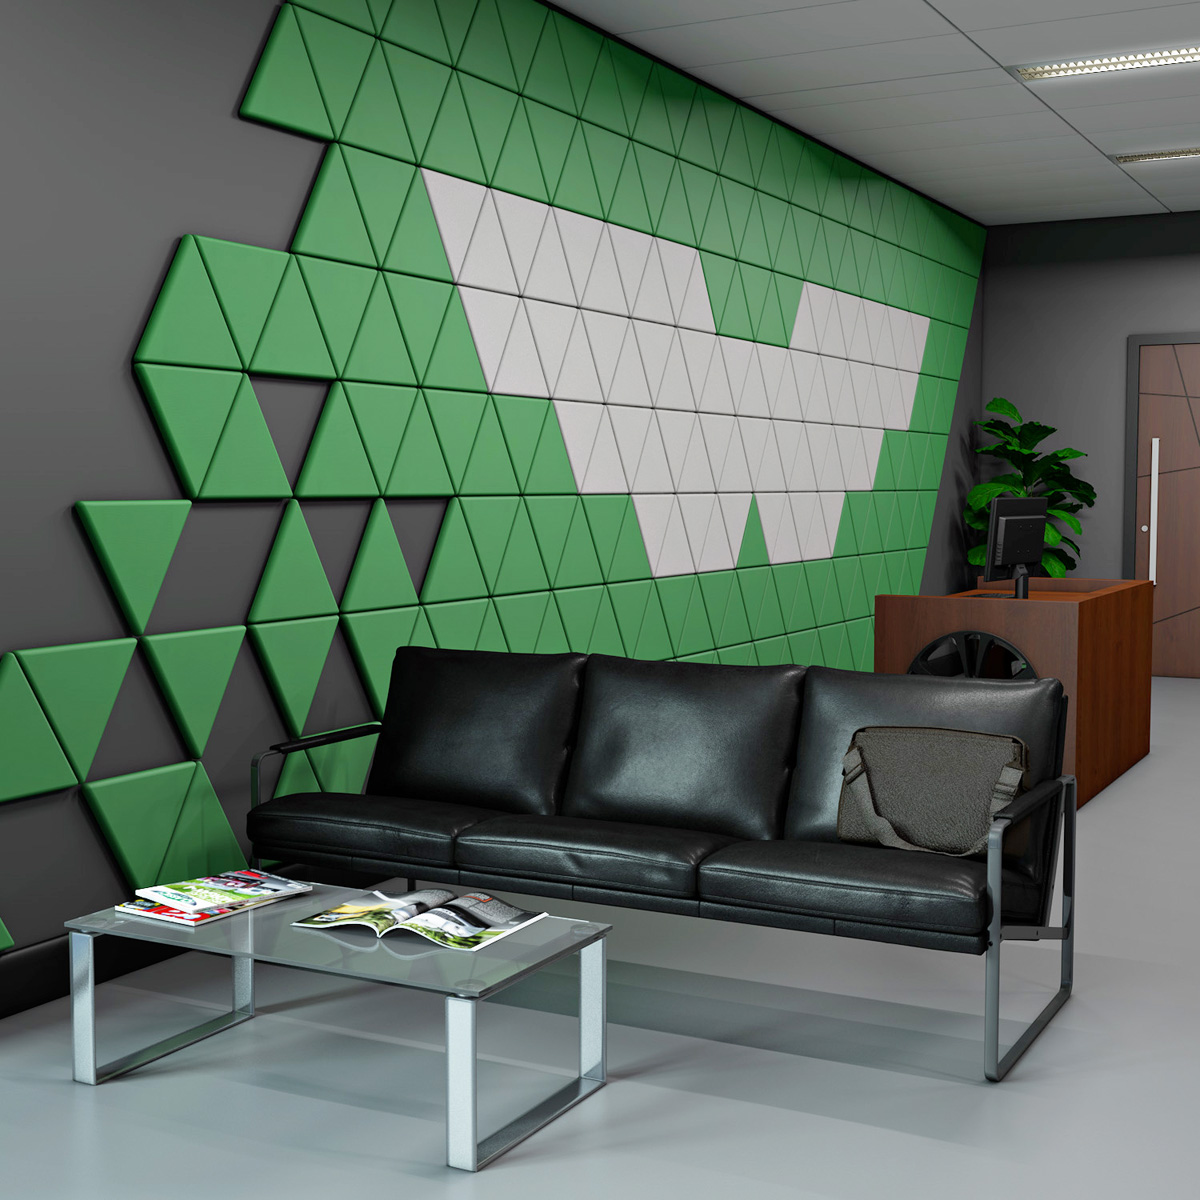 VIRAGE<sup>™</sup> Triangular Acoustic Wall Soundproofing Panels